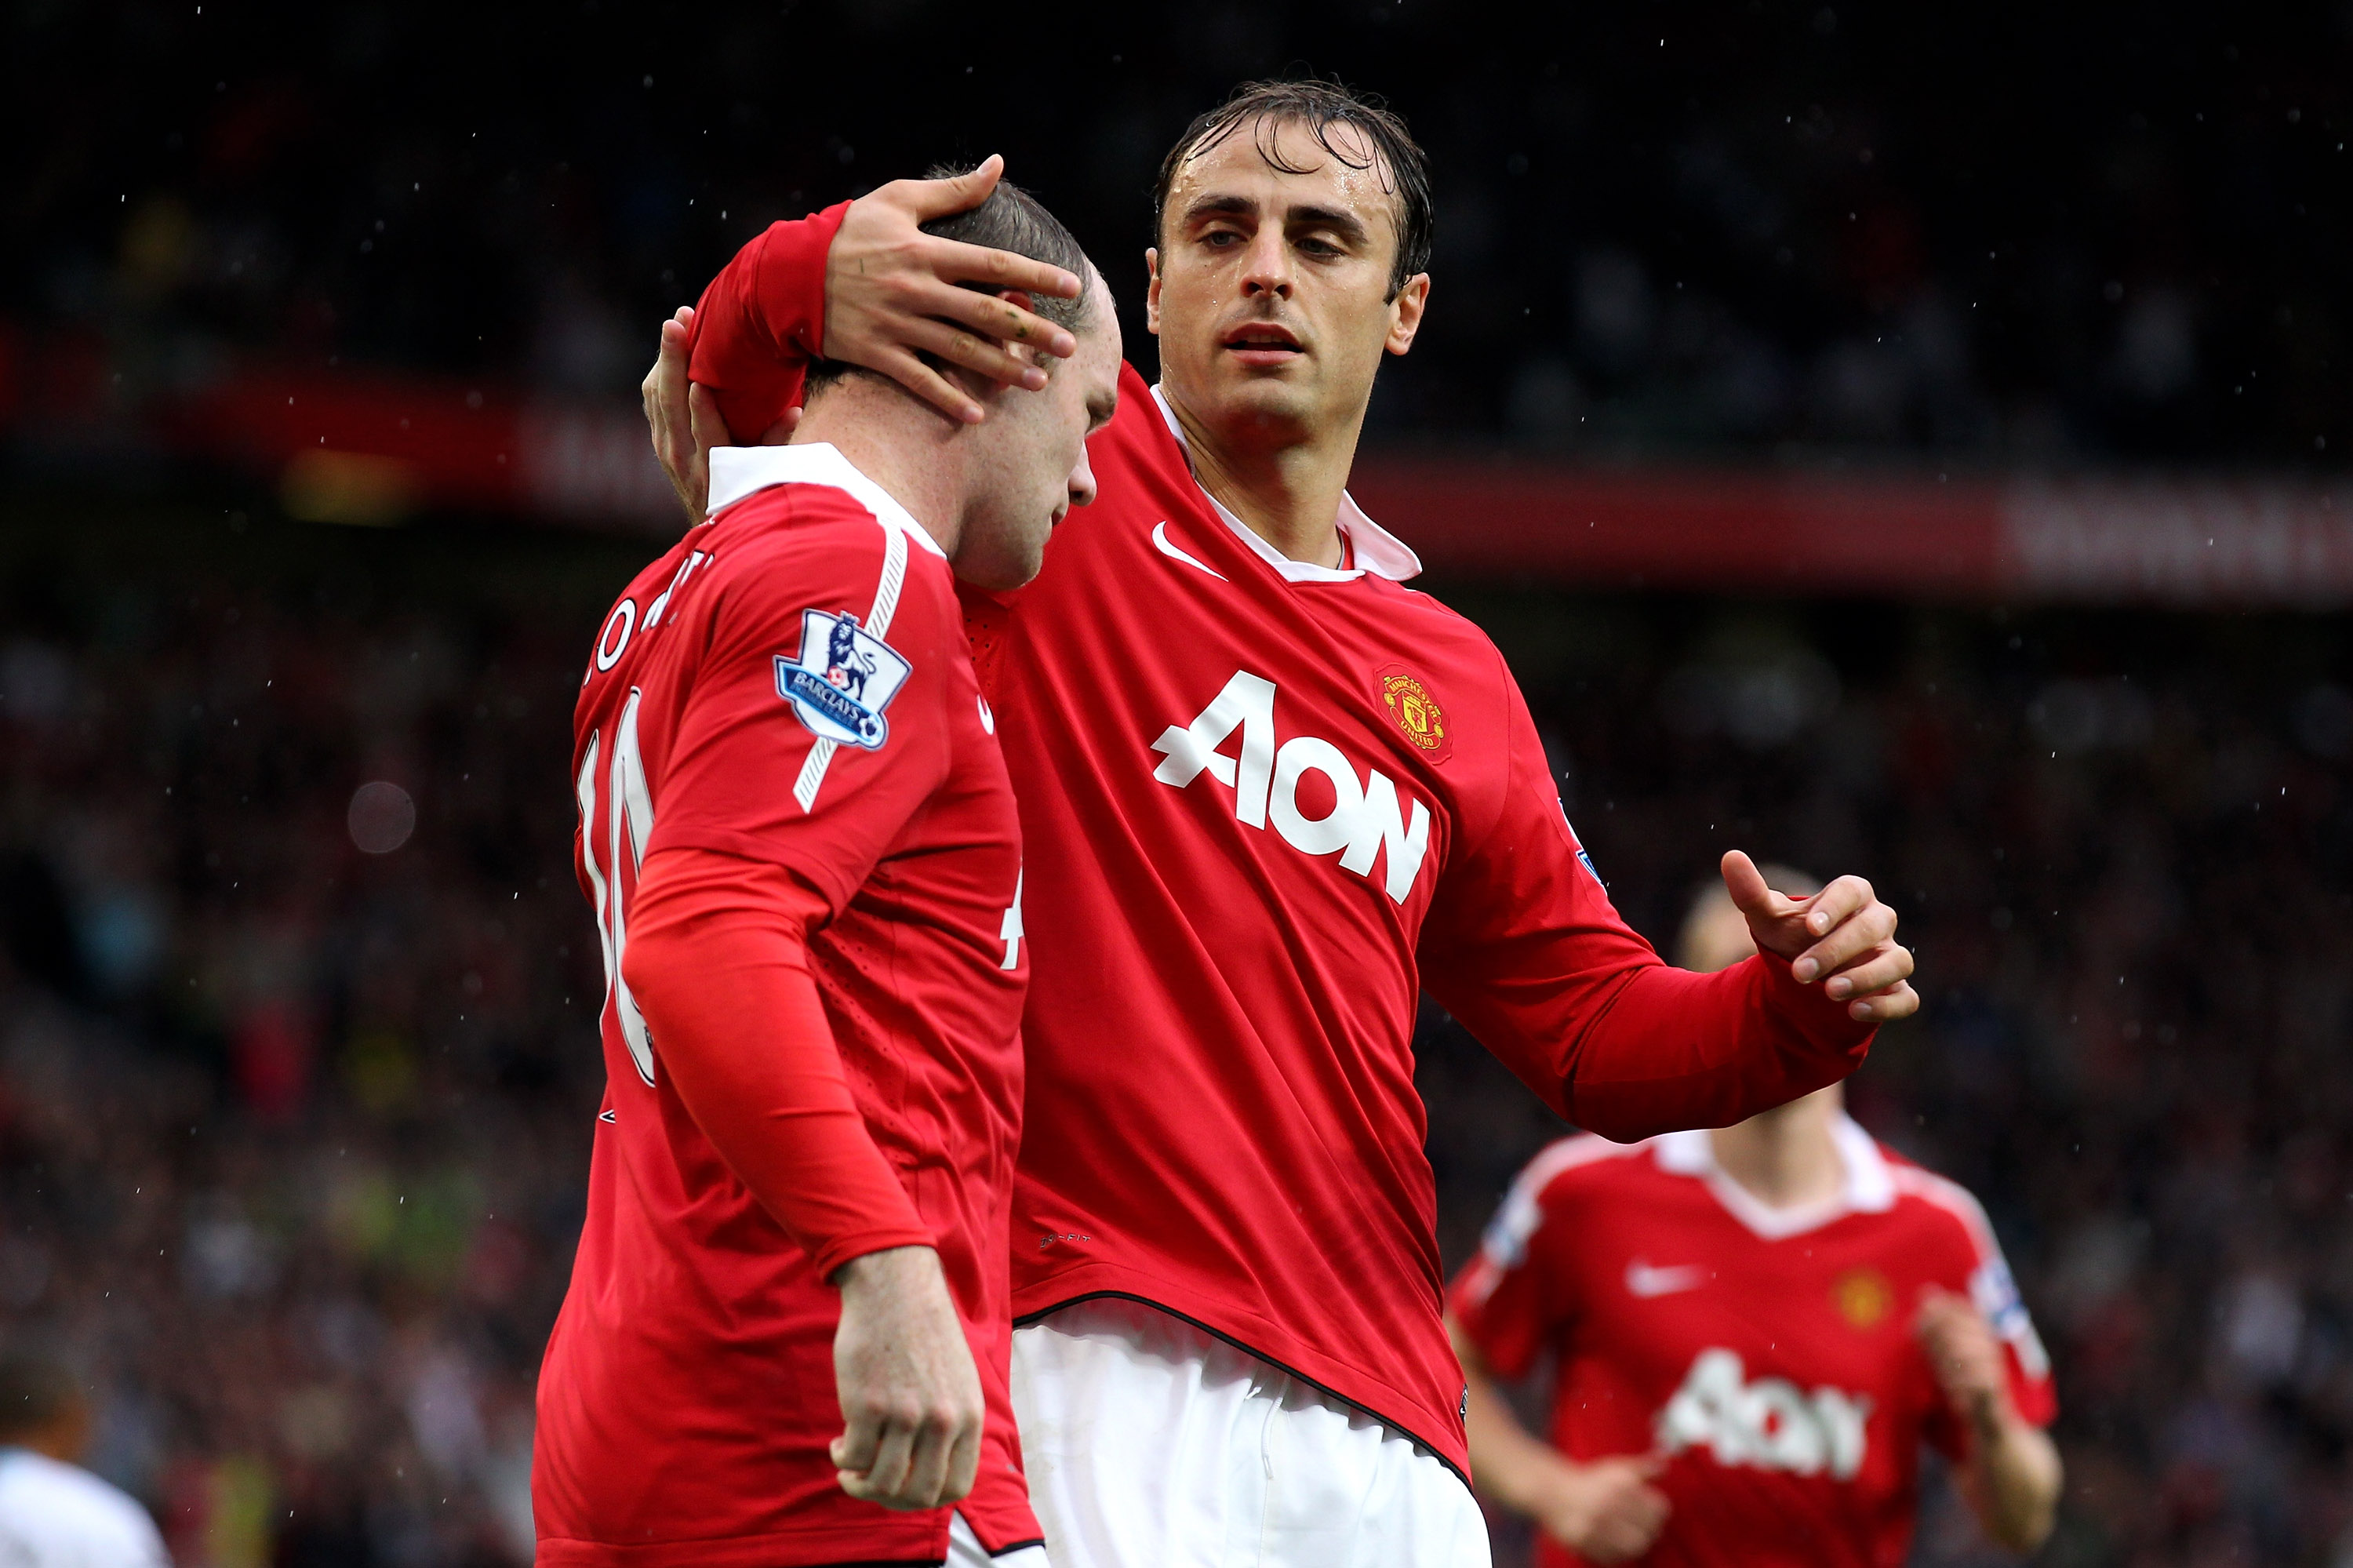 MANCHESTER, ENGLAND - AUGUST 28:  Wayne Rooney of Manchester United is congratulated by team mate Dimitar Berbatov (R) after scoring the opening goal during the Barclays Premier League match between Manchester United and West Ham United at Old Trafford on